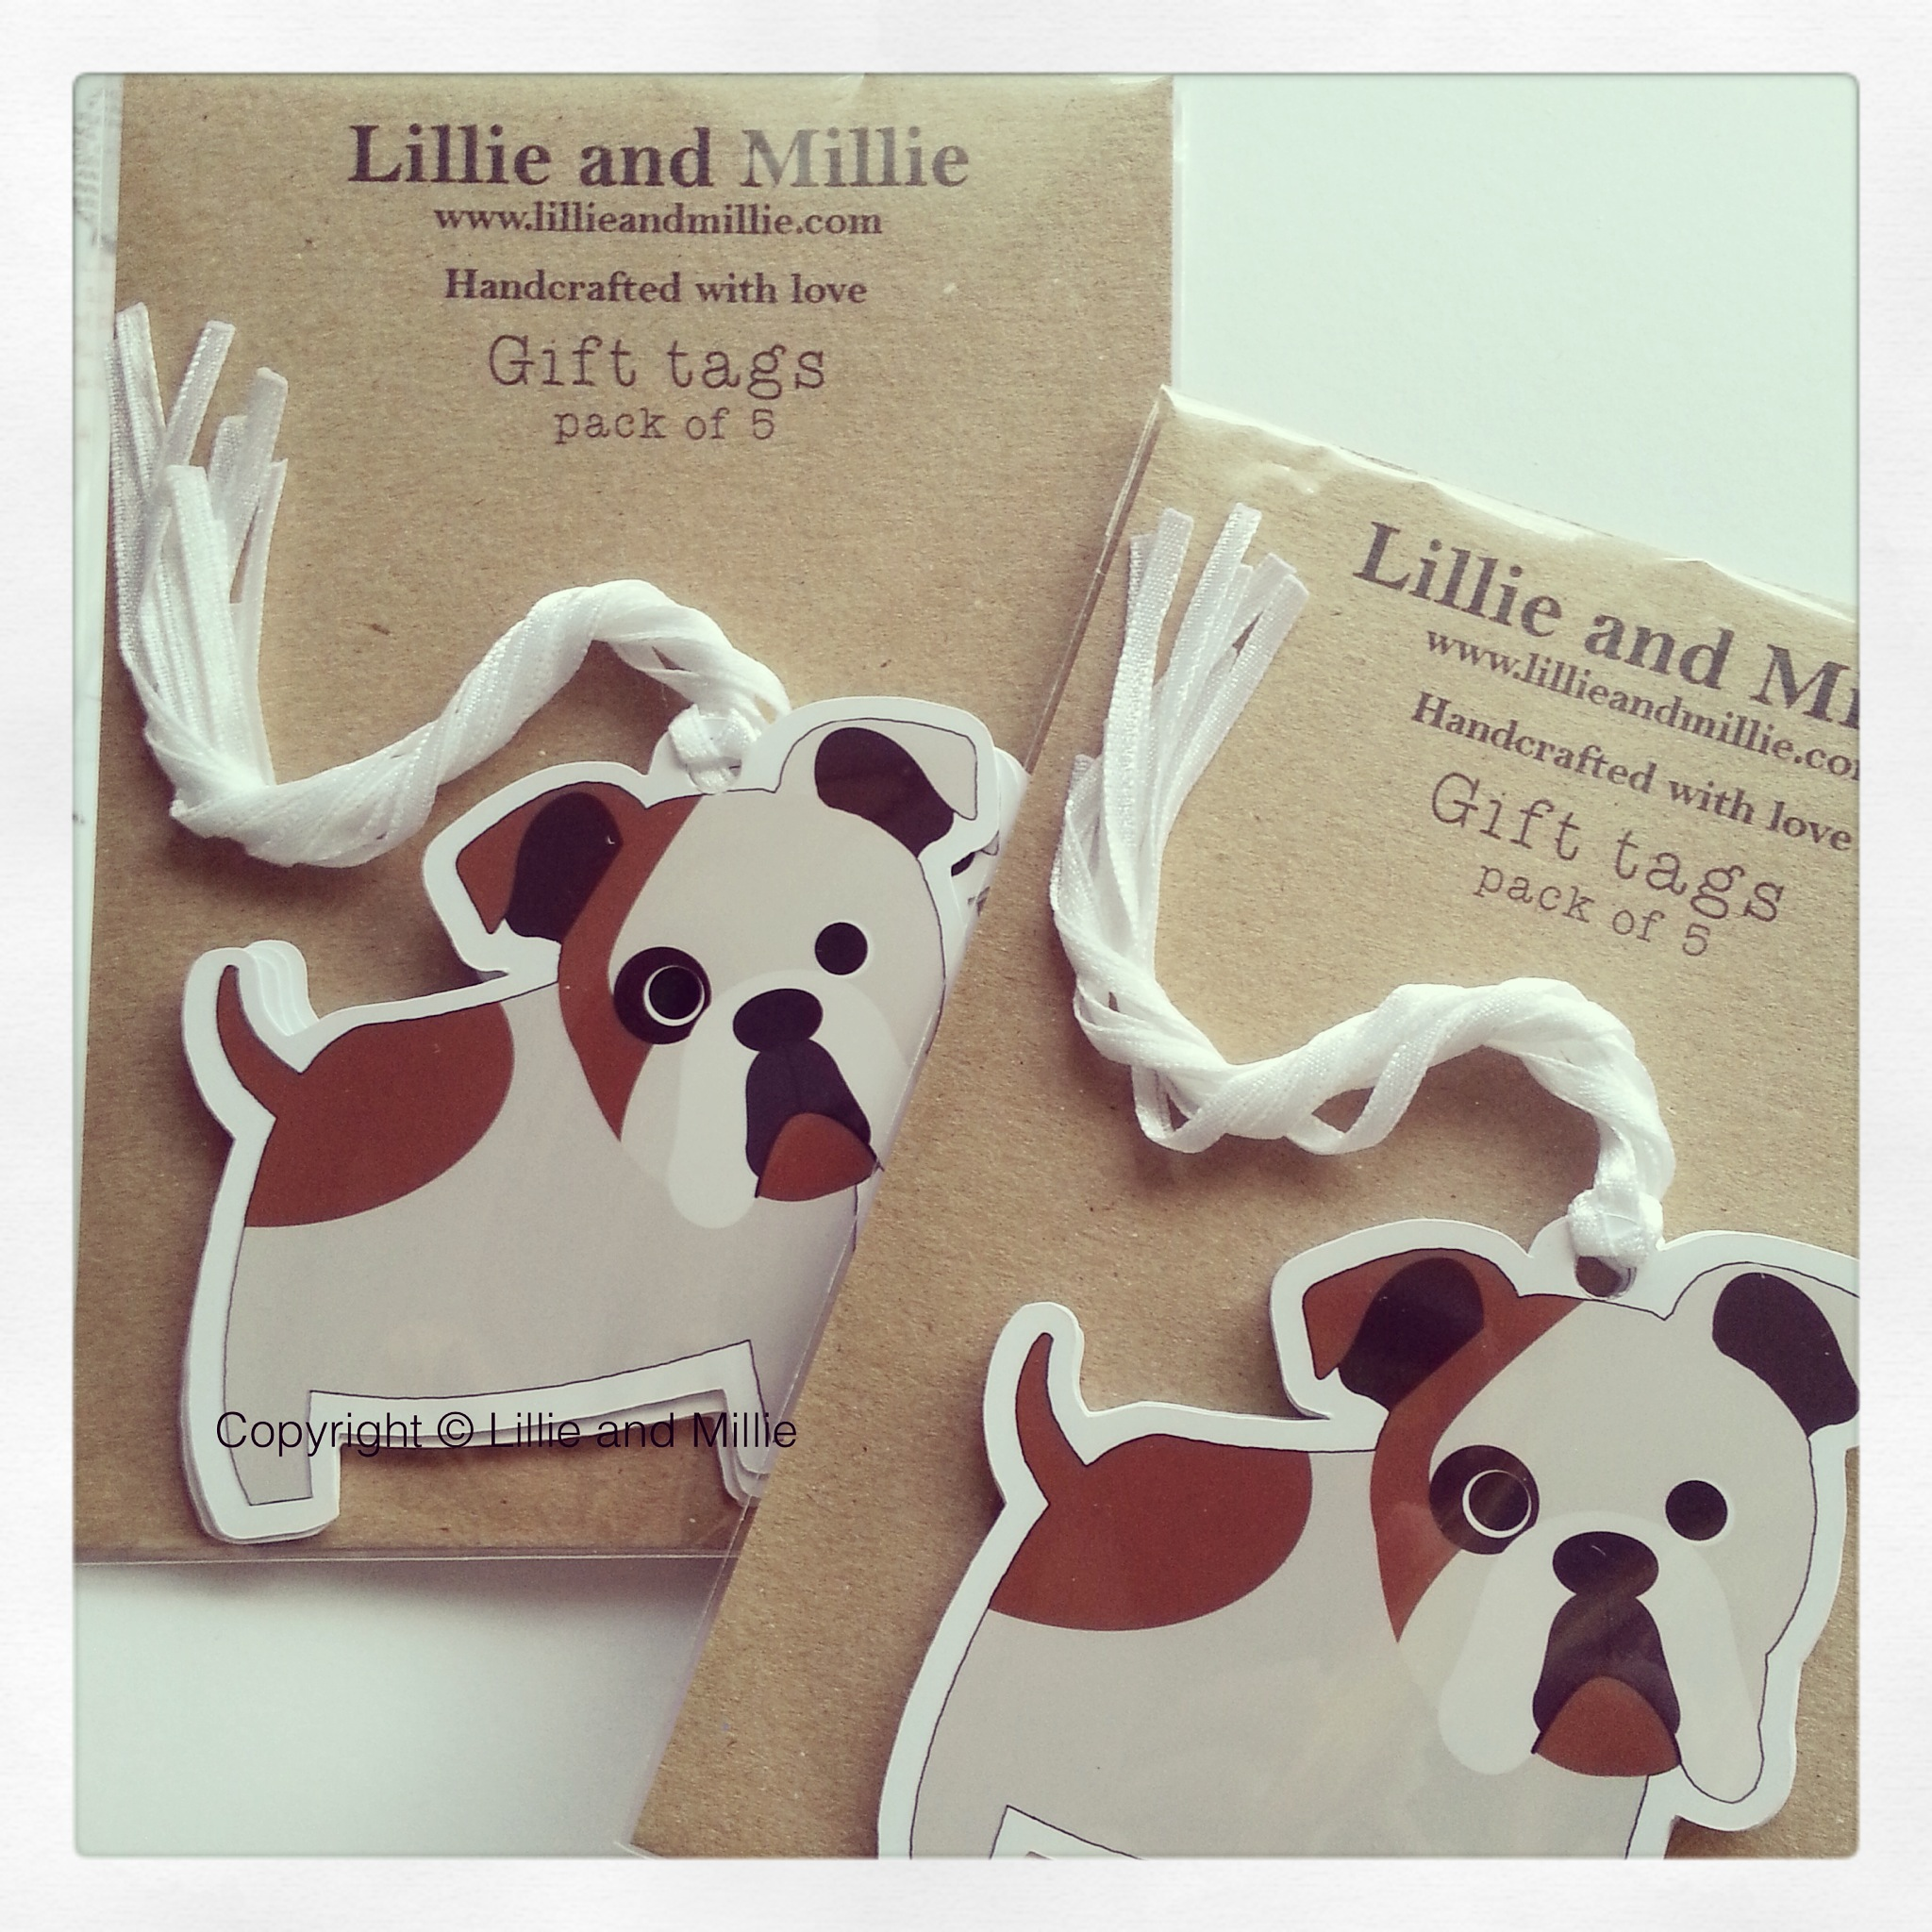 Cute and Cuddly Bulldog Gift Tags 5 Pack